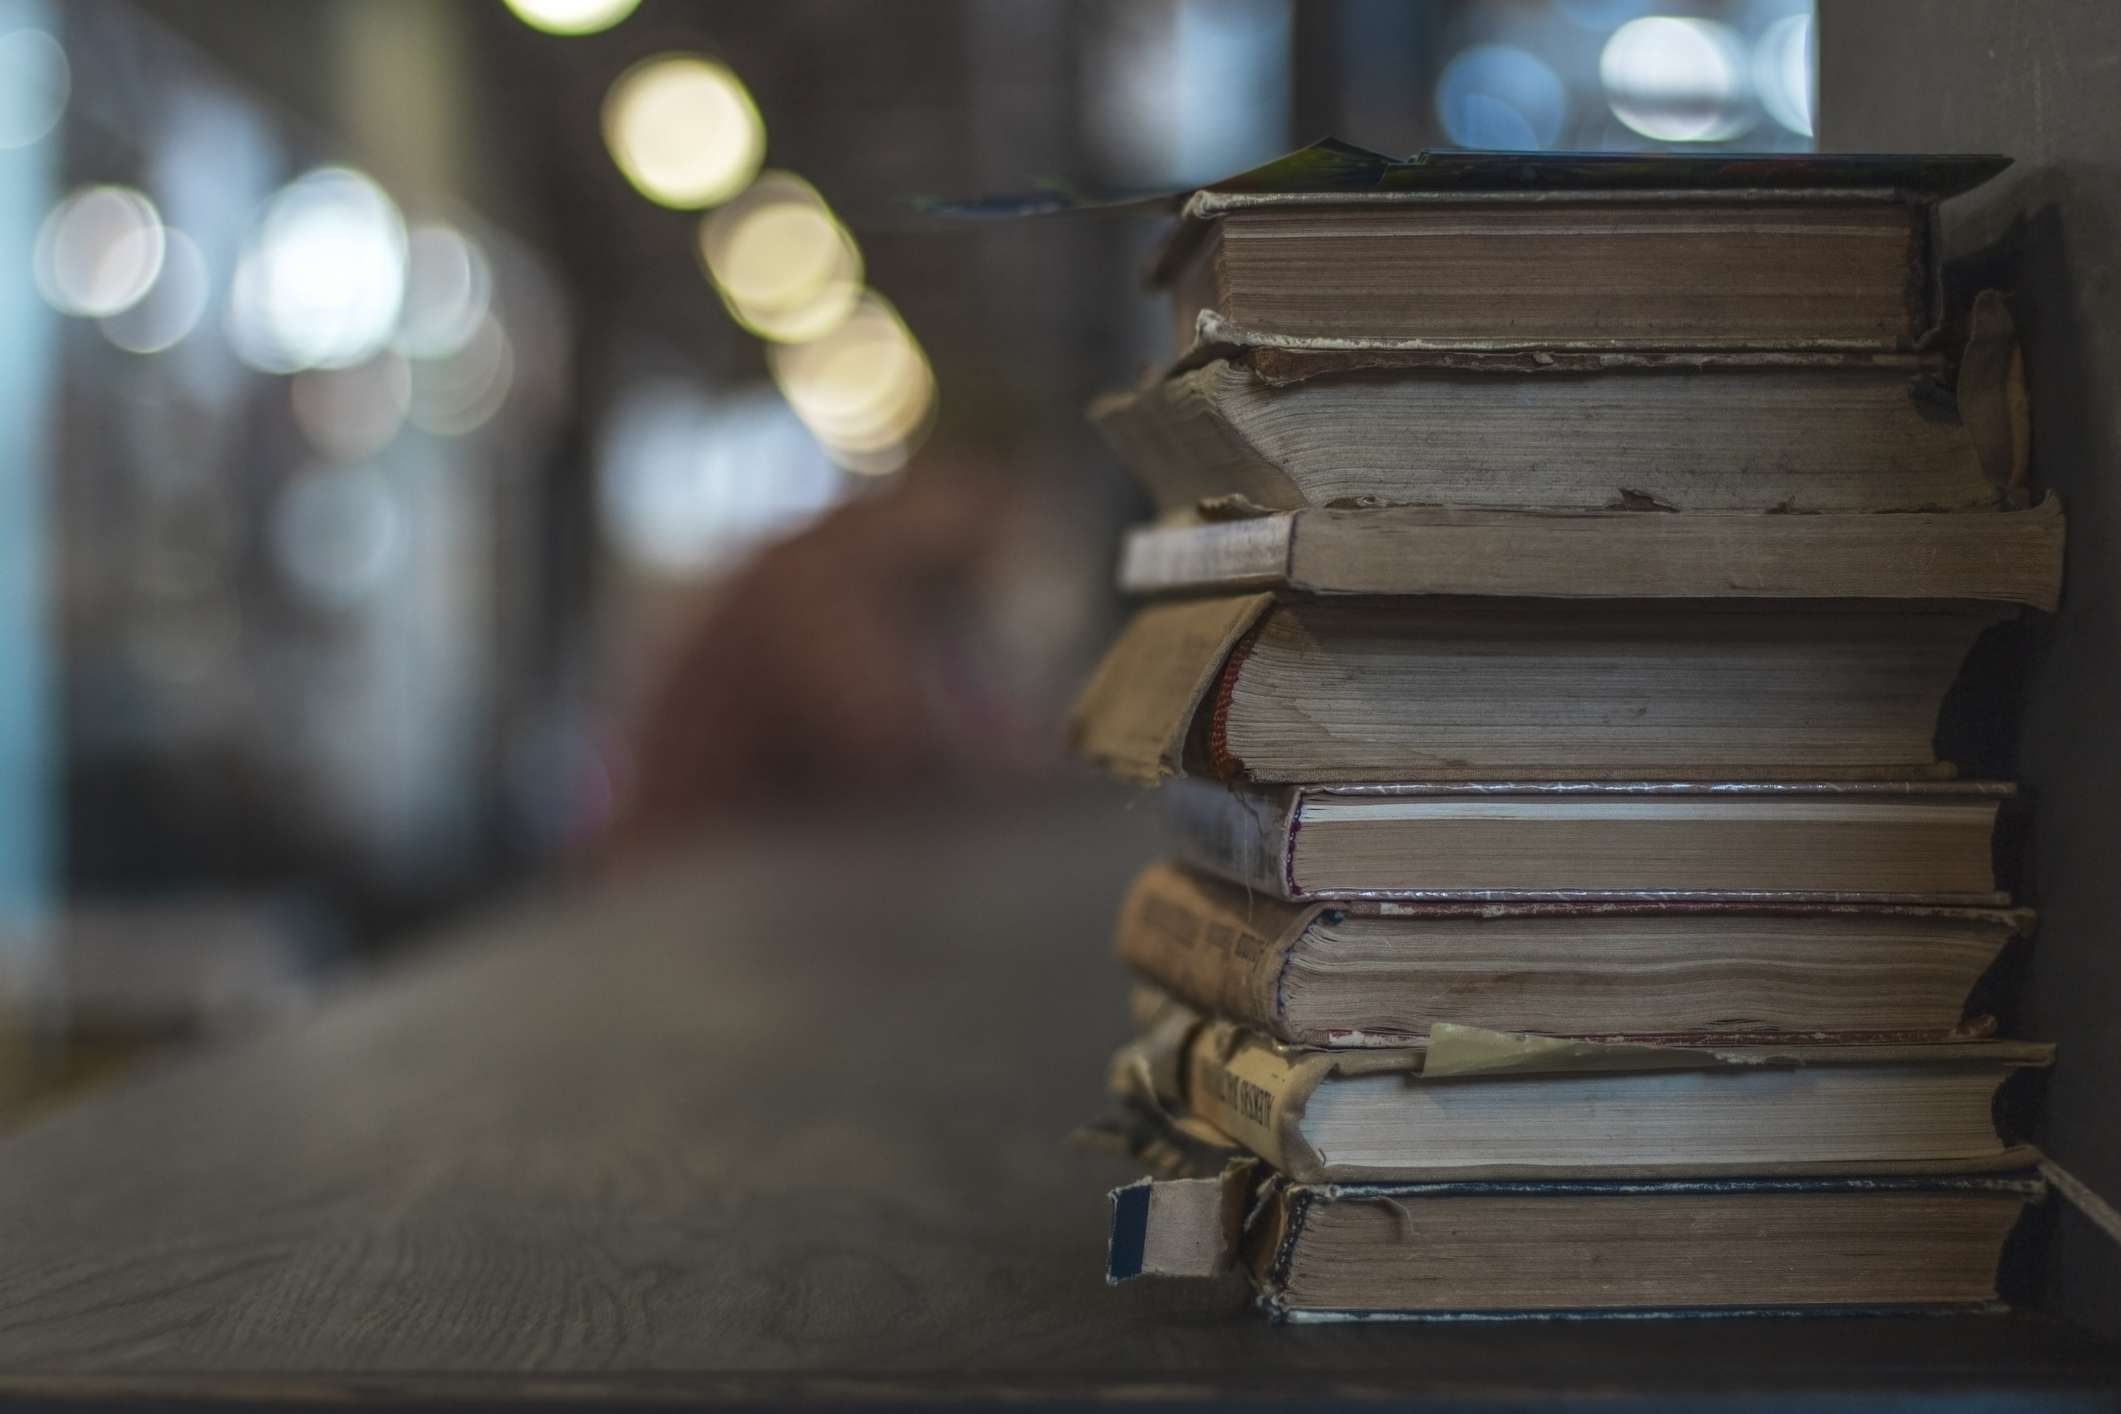 Old books on a table